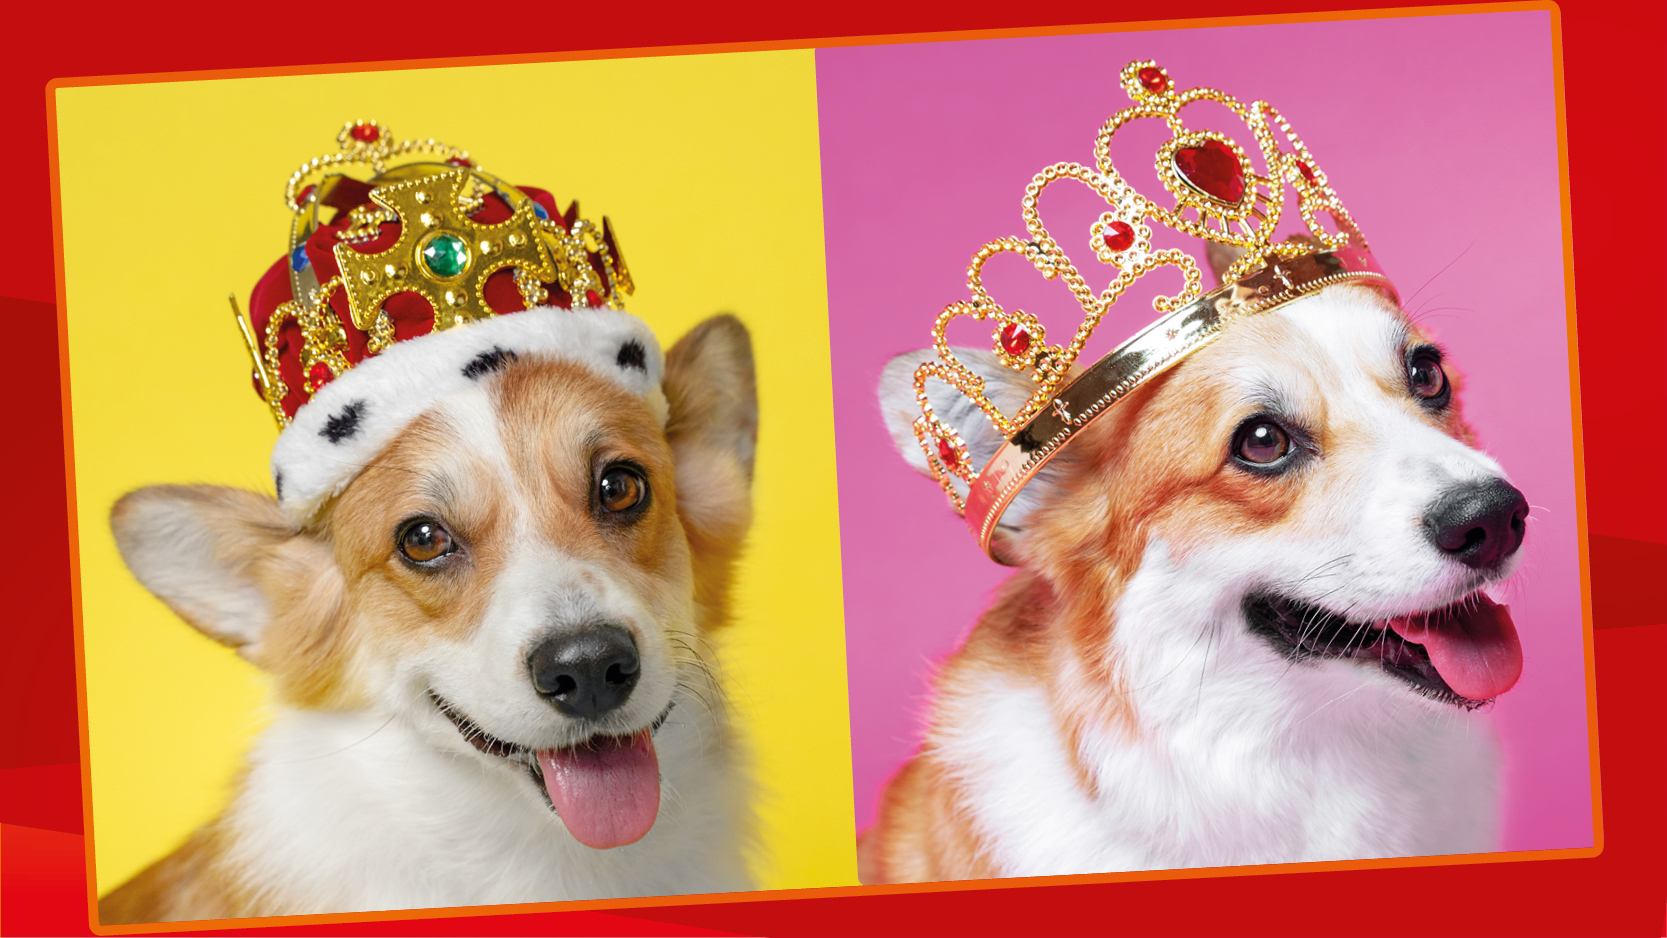 Two corgis against bright pink and yellow background, one wearing a crown and one wearing a tiara